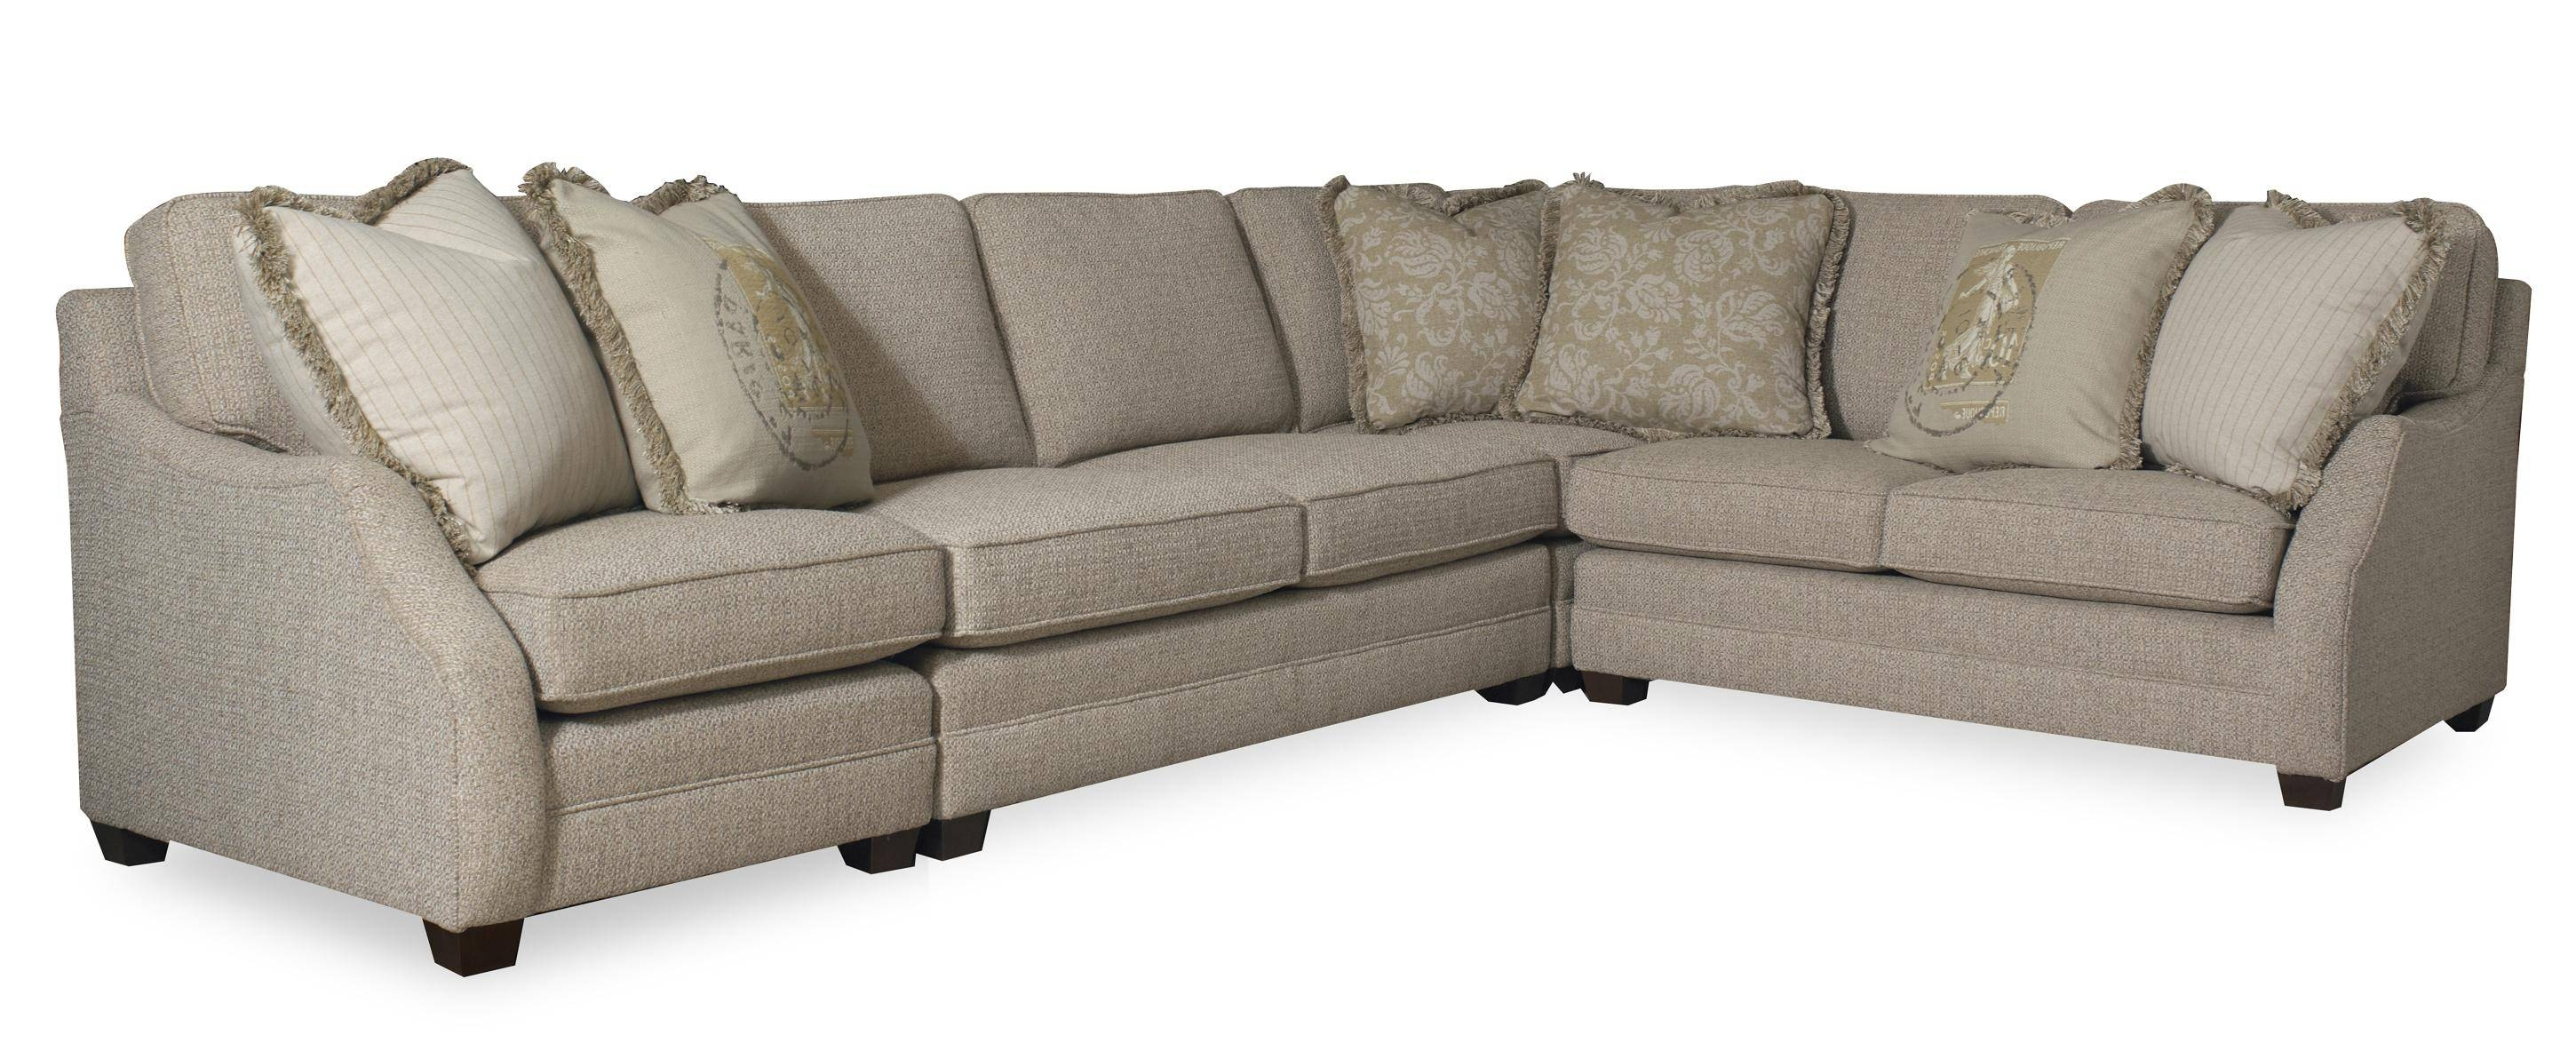 Transitional Three Piece Sectional Sofa With Raf Sofa Return Regarding Sam Moore Sofas (View 14 of 15)